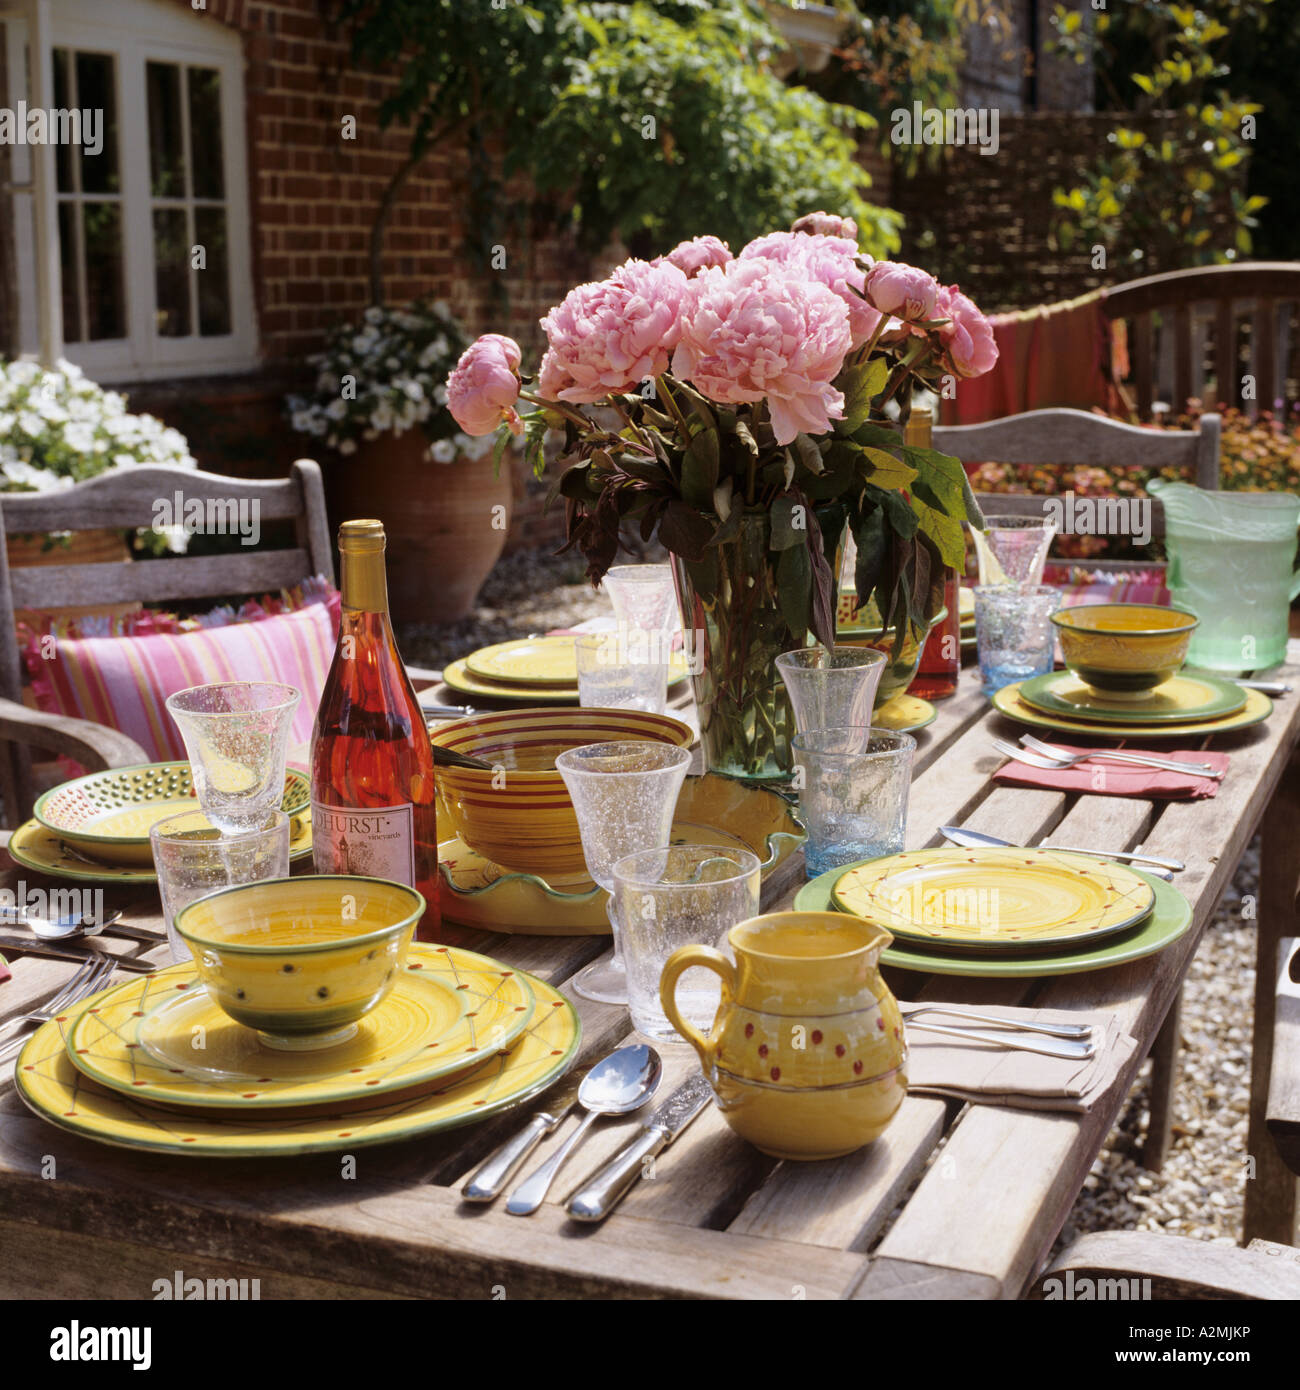 Al fresco dining in an English garden on a sunny day - Stock Image